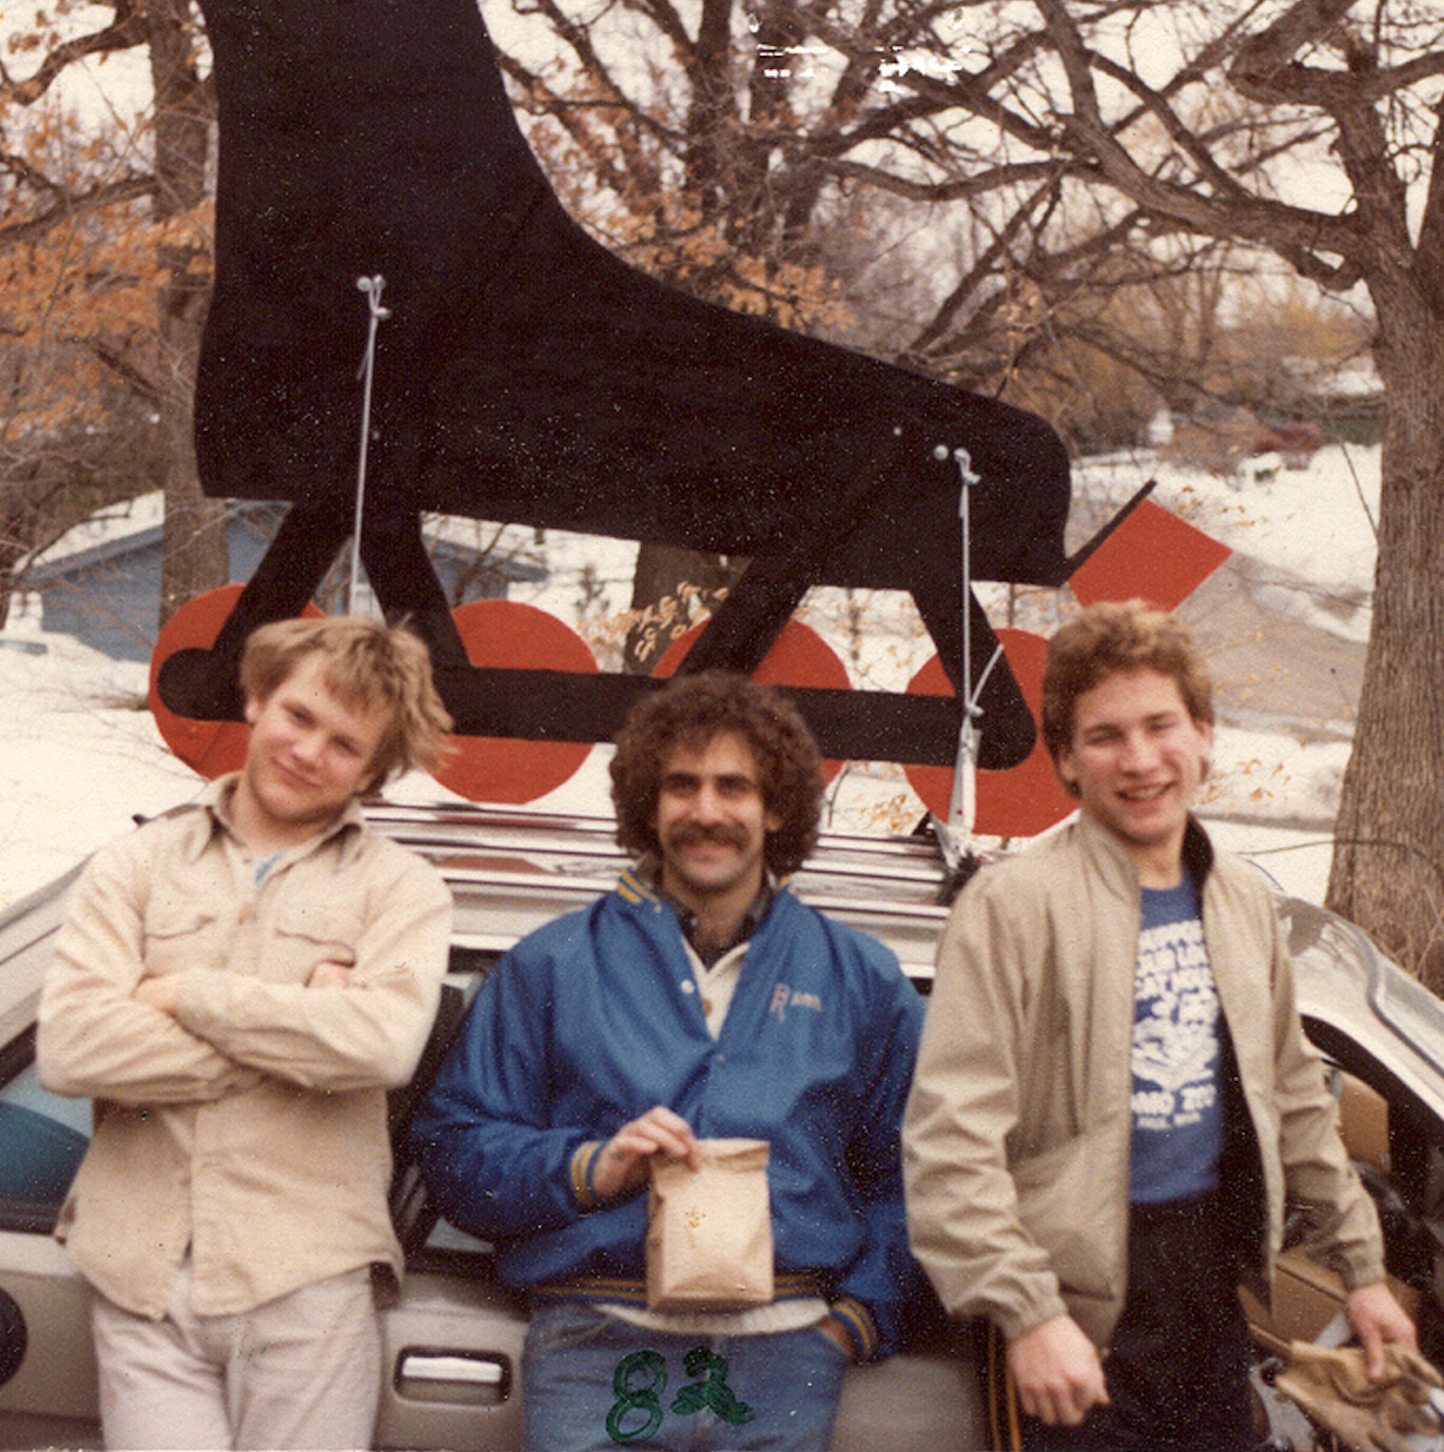 1982 heading off to our first SIA ski show in Las Vegas